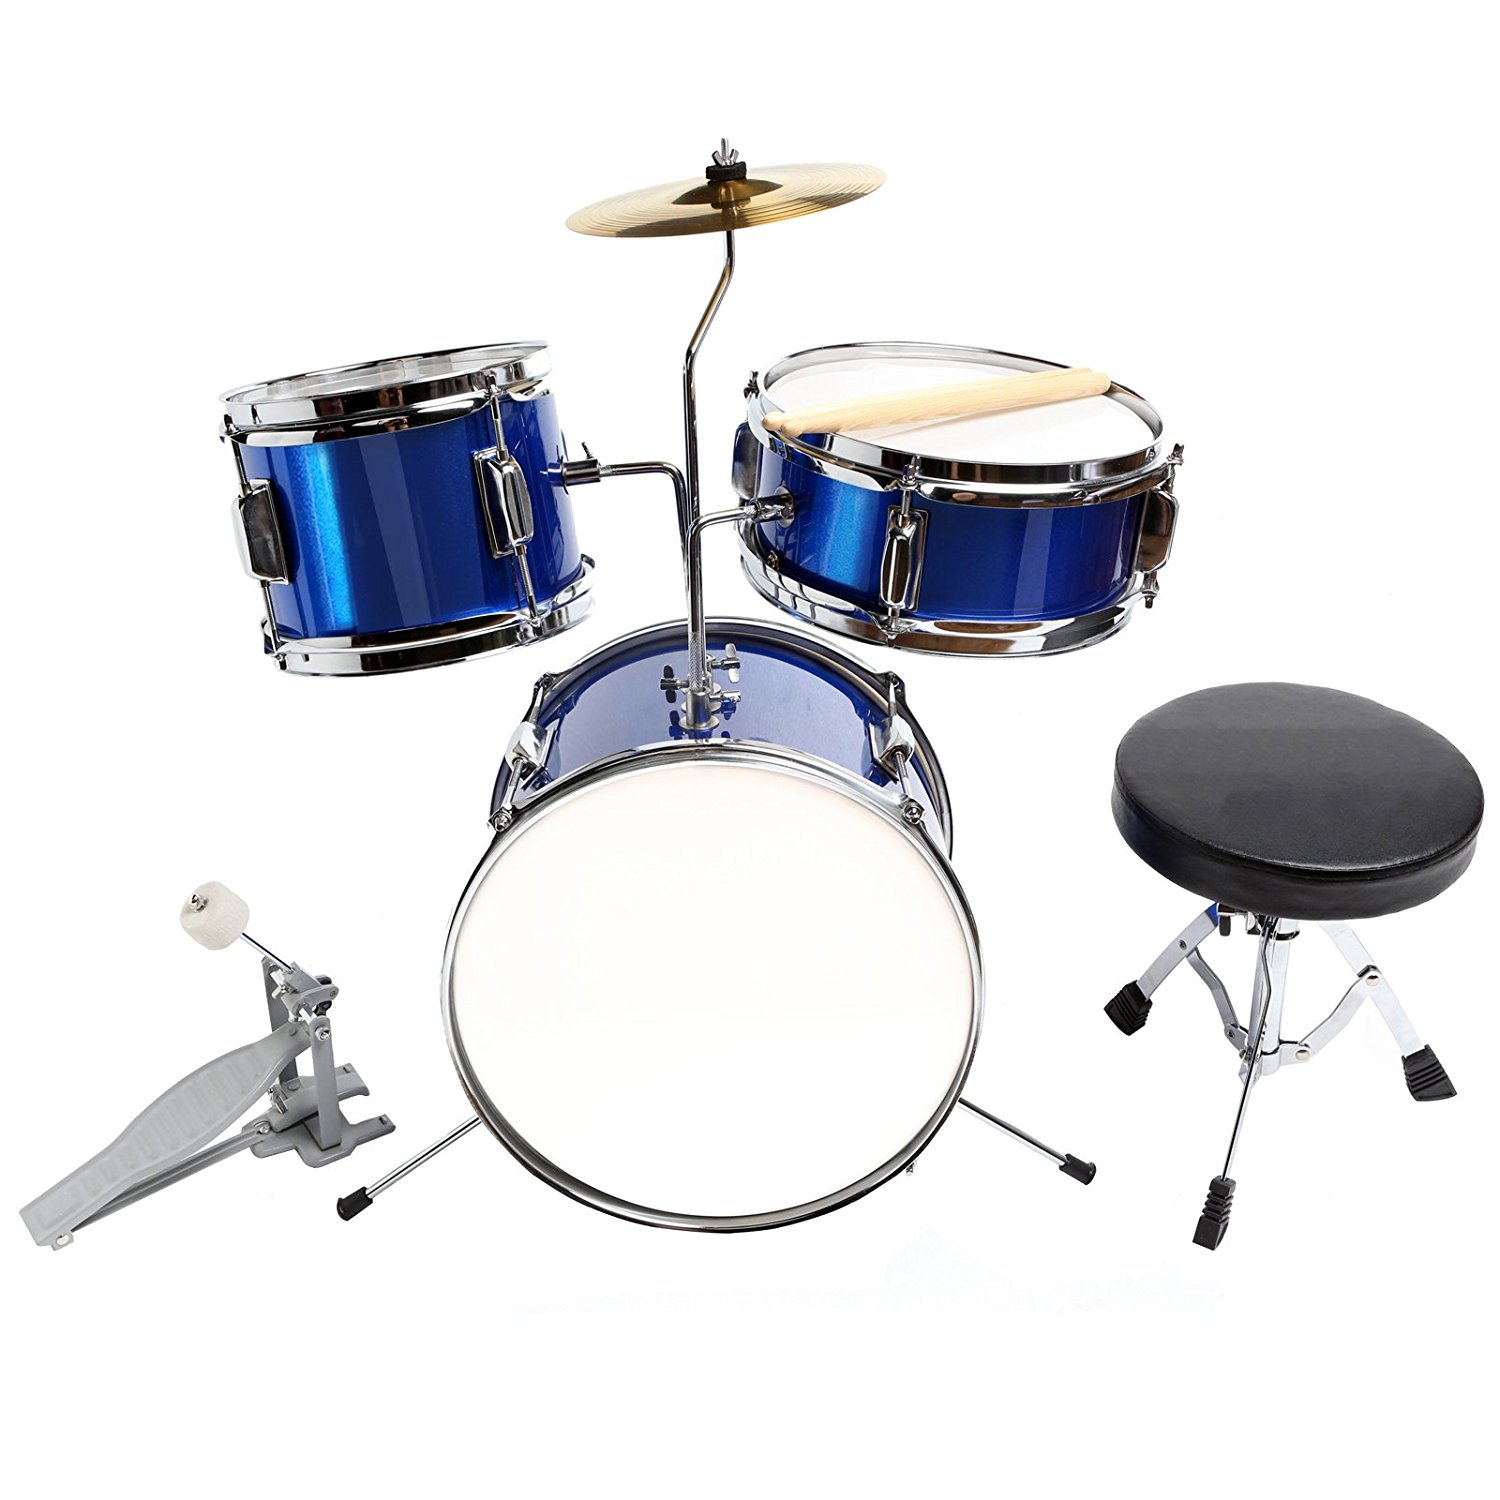 "13"" 3 Piece Complete Junior Drum Set Cymbal Child Kids Kit w  Stool Sticks Blue by Uenjoy"